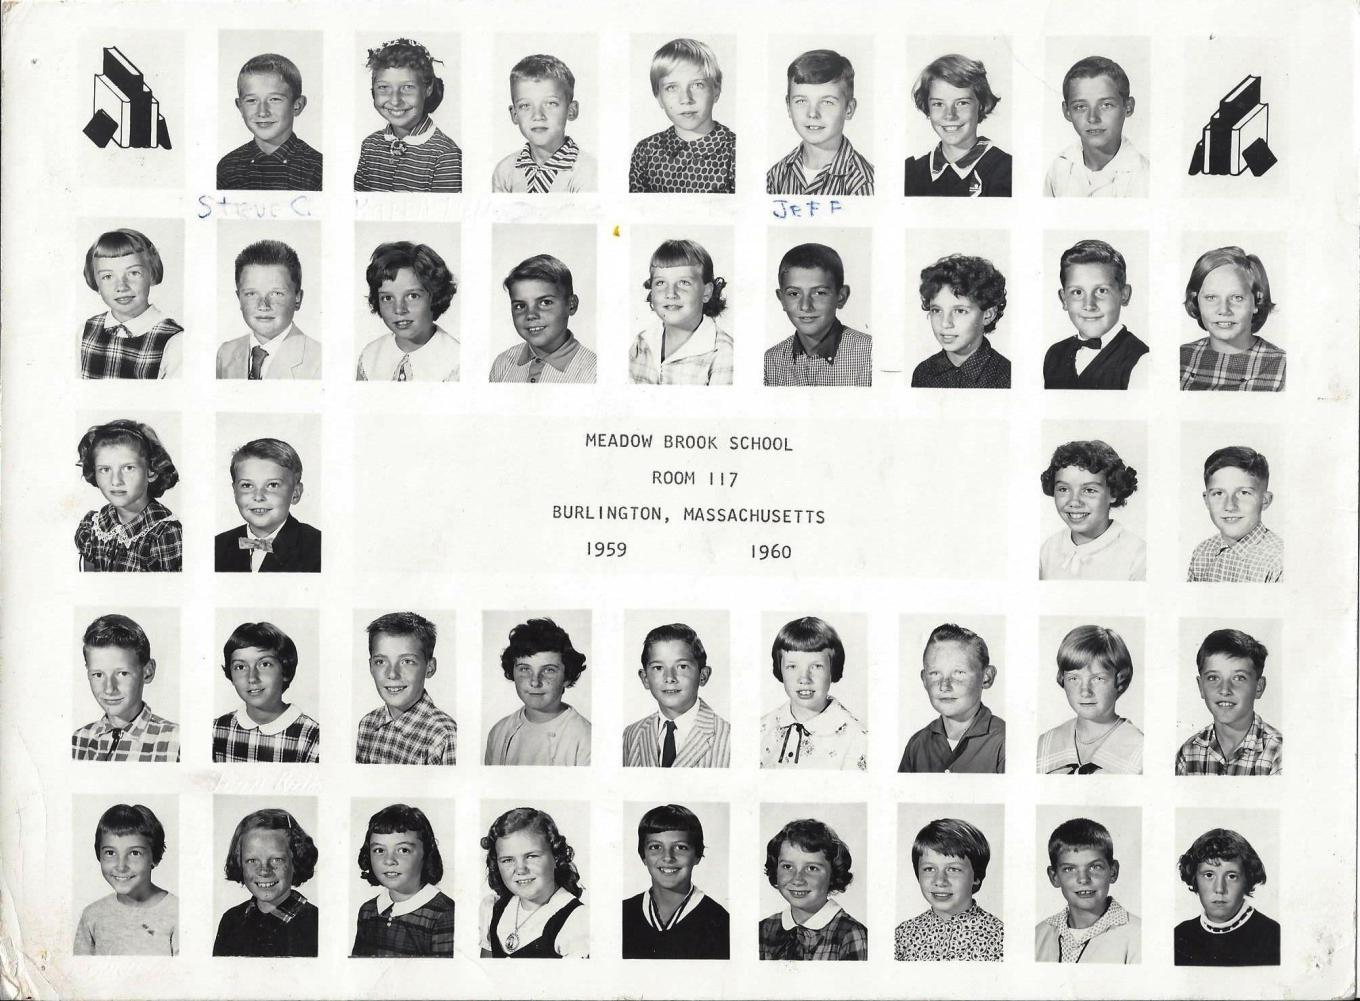 Meadow Brook School Room 117, 1959-1960, Burlington MA